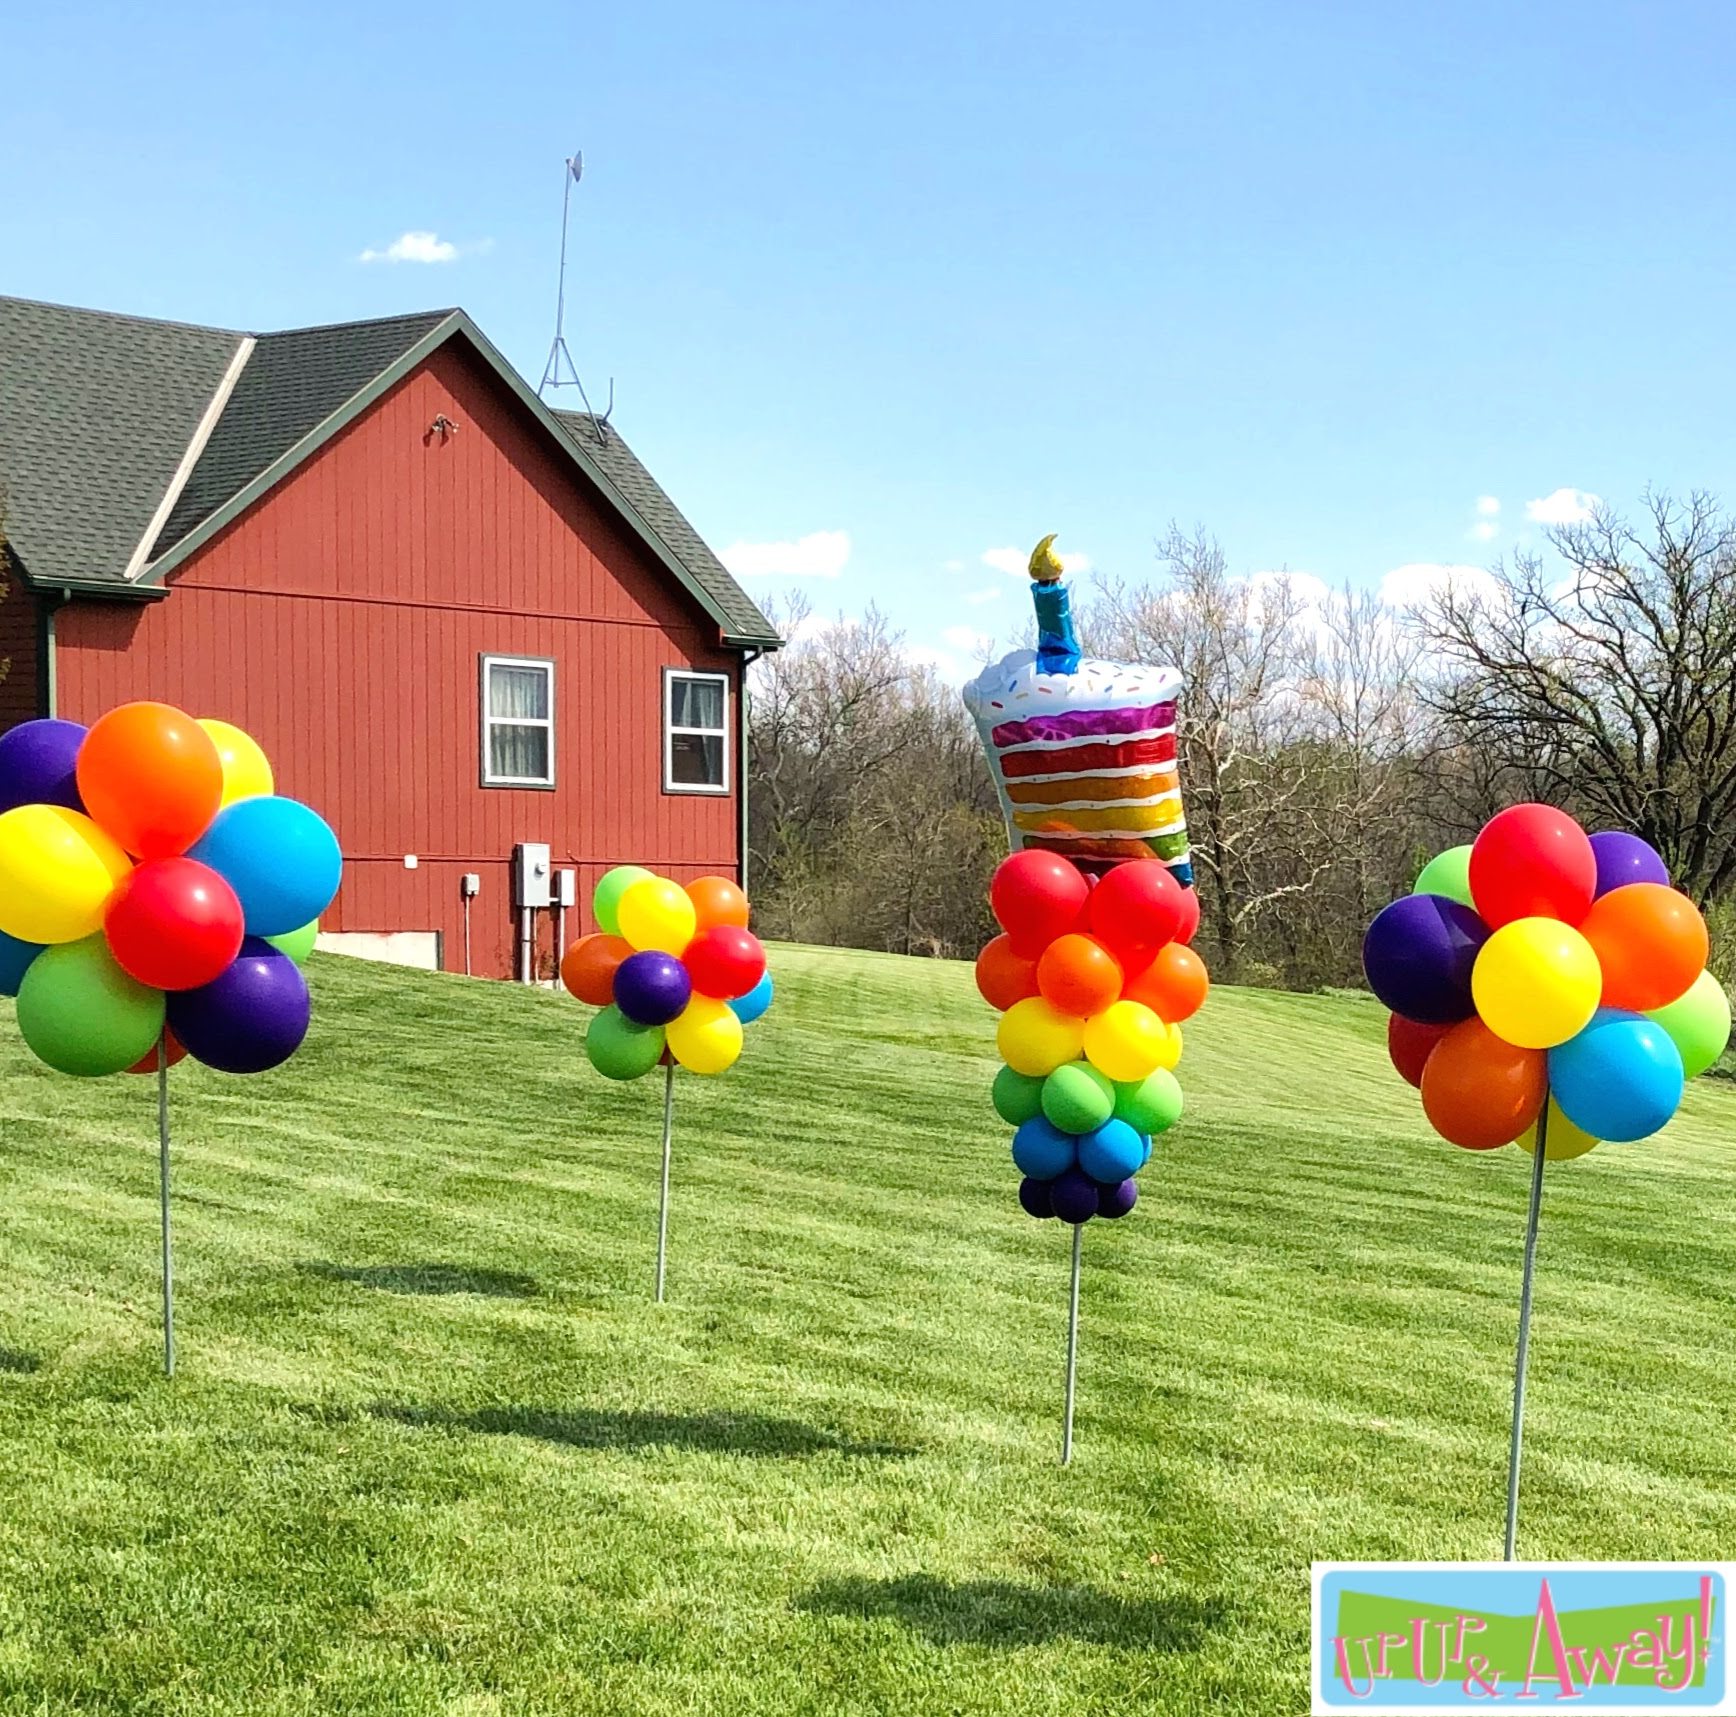 Piece of Cake with Four Topiaries | Up, Up & Away! Balloons